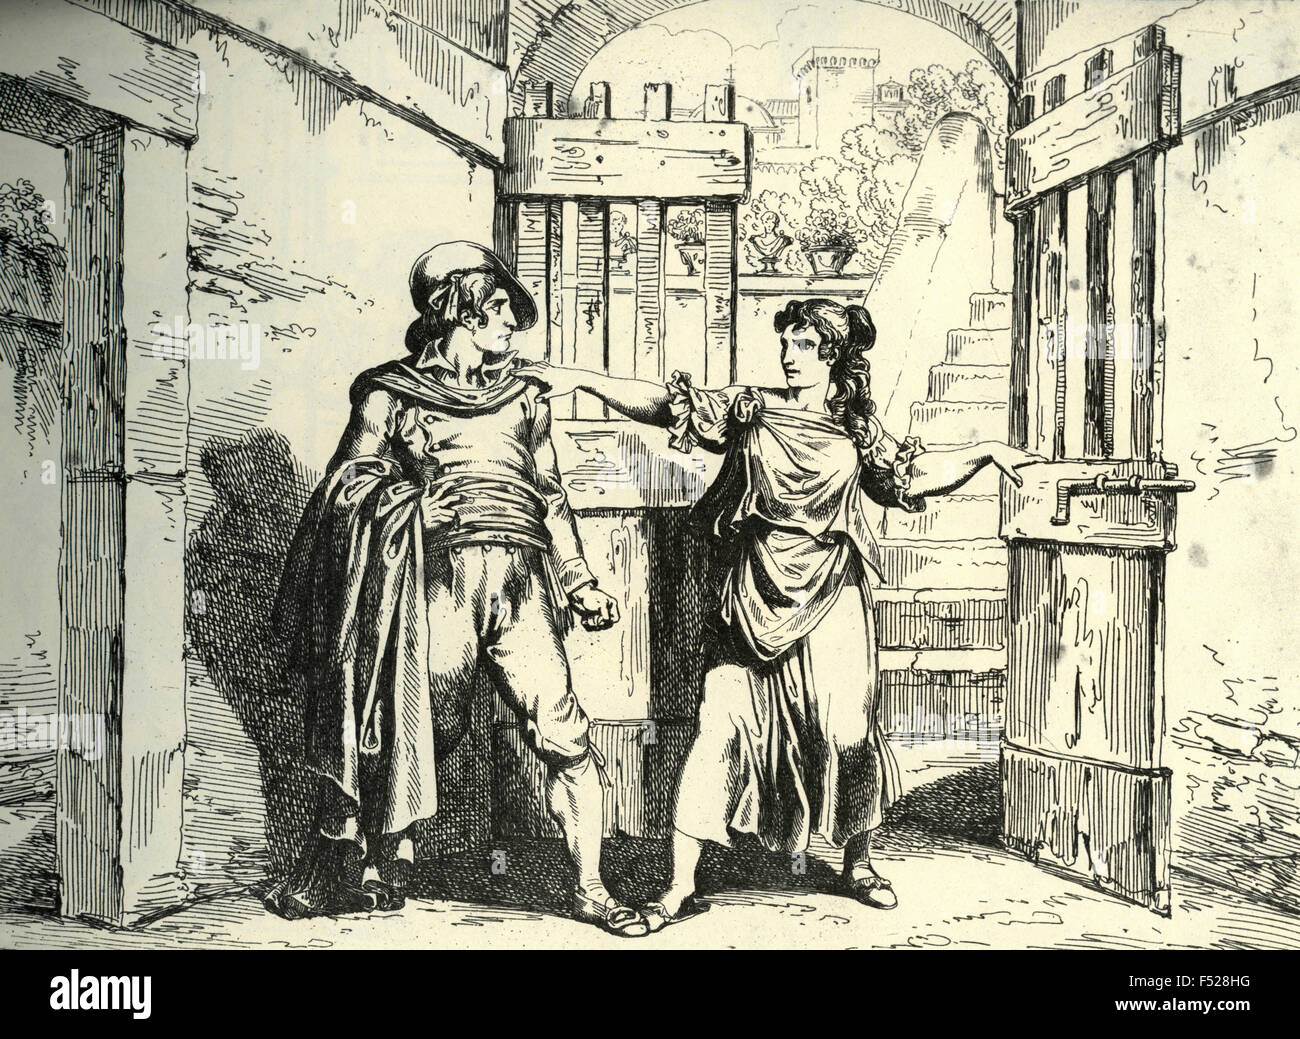 Illustration: Meo Patacca astonished at being rejected by Nuccia as supposedly unfaithful - Stock Image